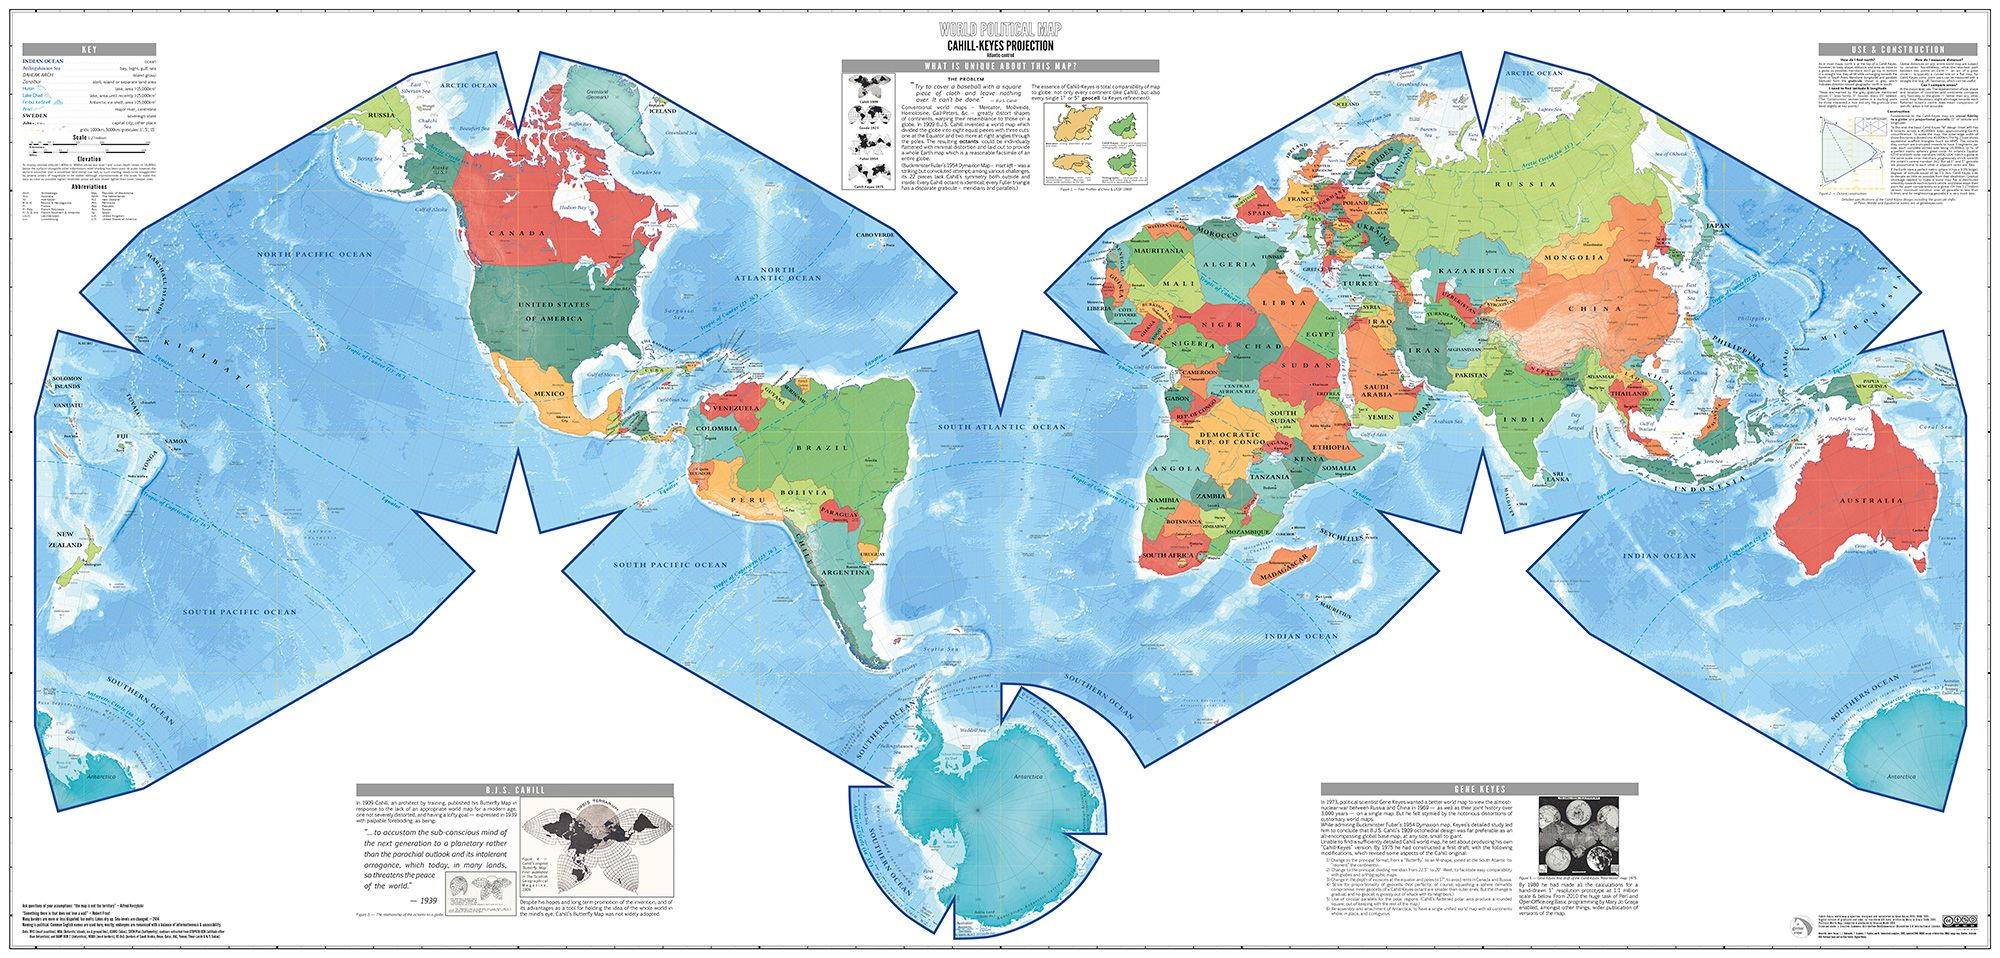 Polyhedral projections improve the accurately of mapping the earth source httpimgurgiccymz waterman polyhedron projection maps gumiabroncs Choice Image